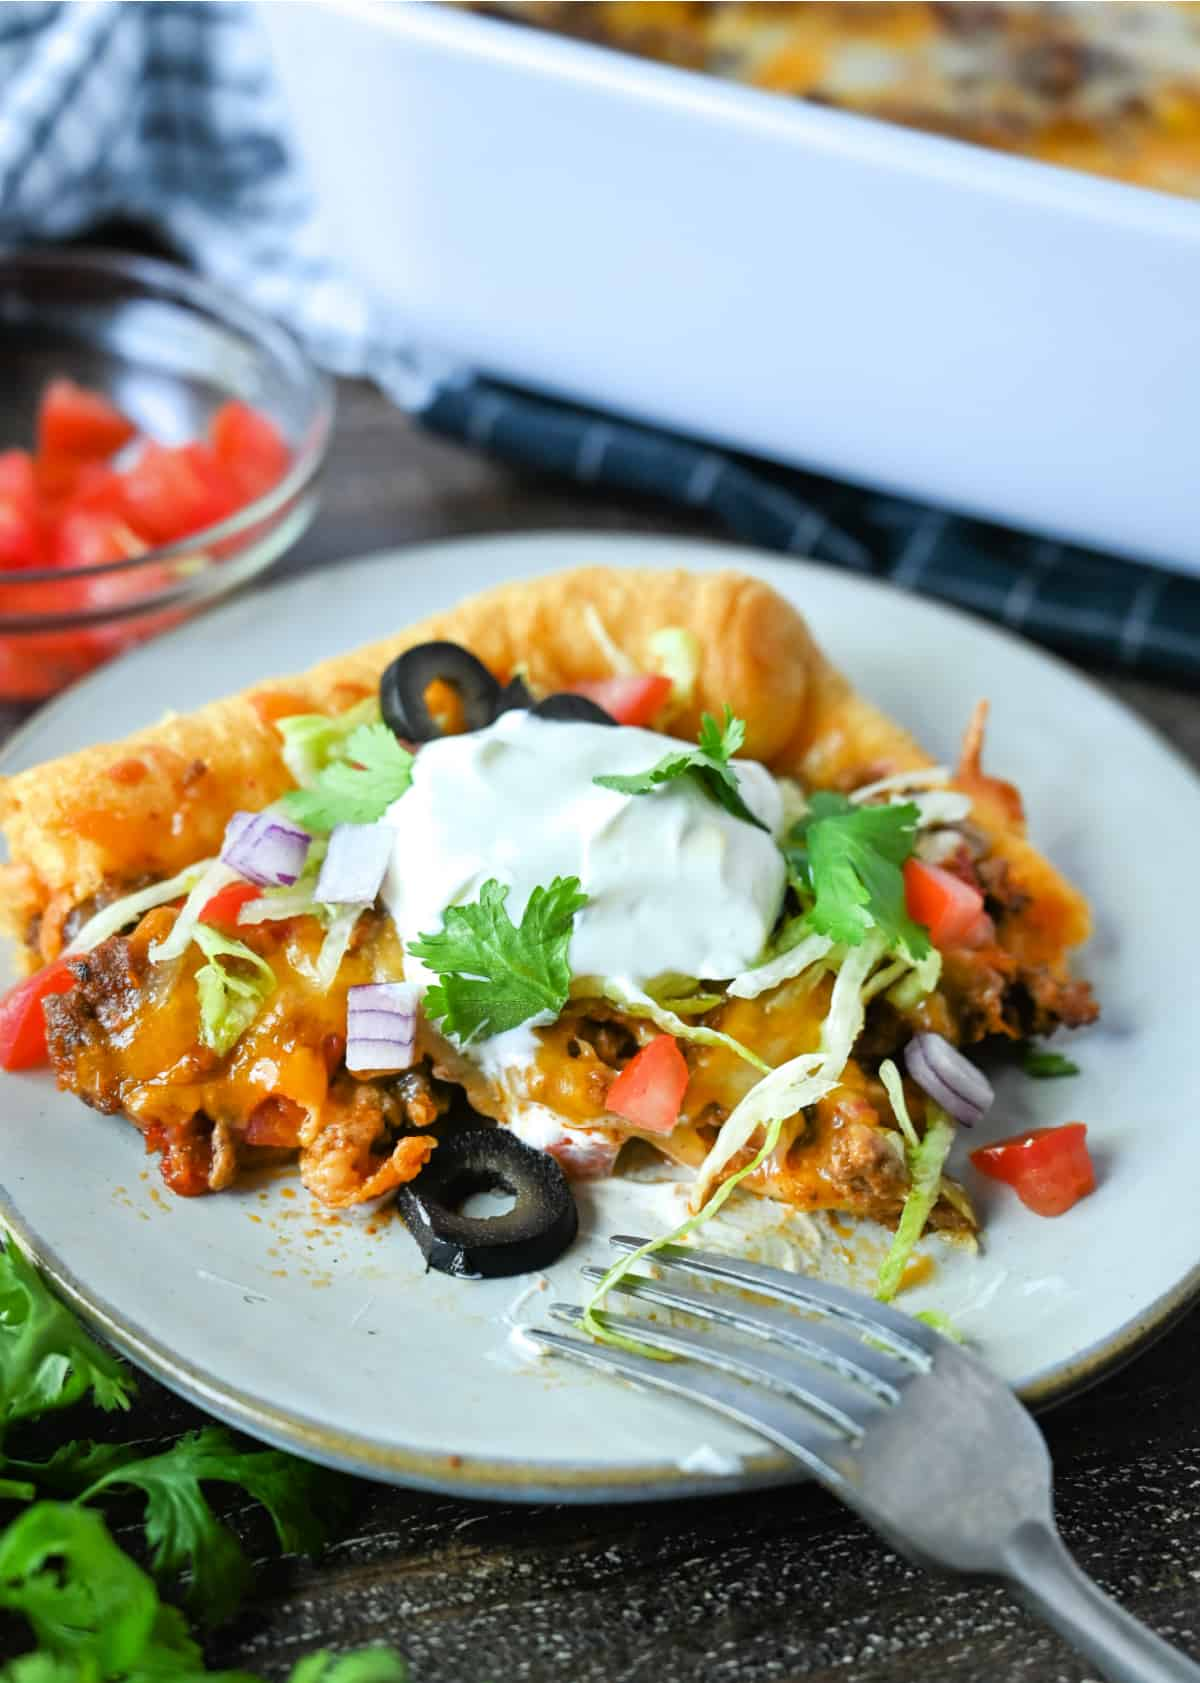 A serving of taco crescent roll bake on a white plate with tomatoes, olives lettuce and sour cream.